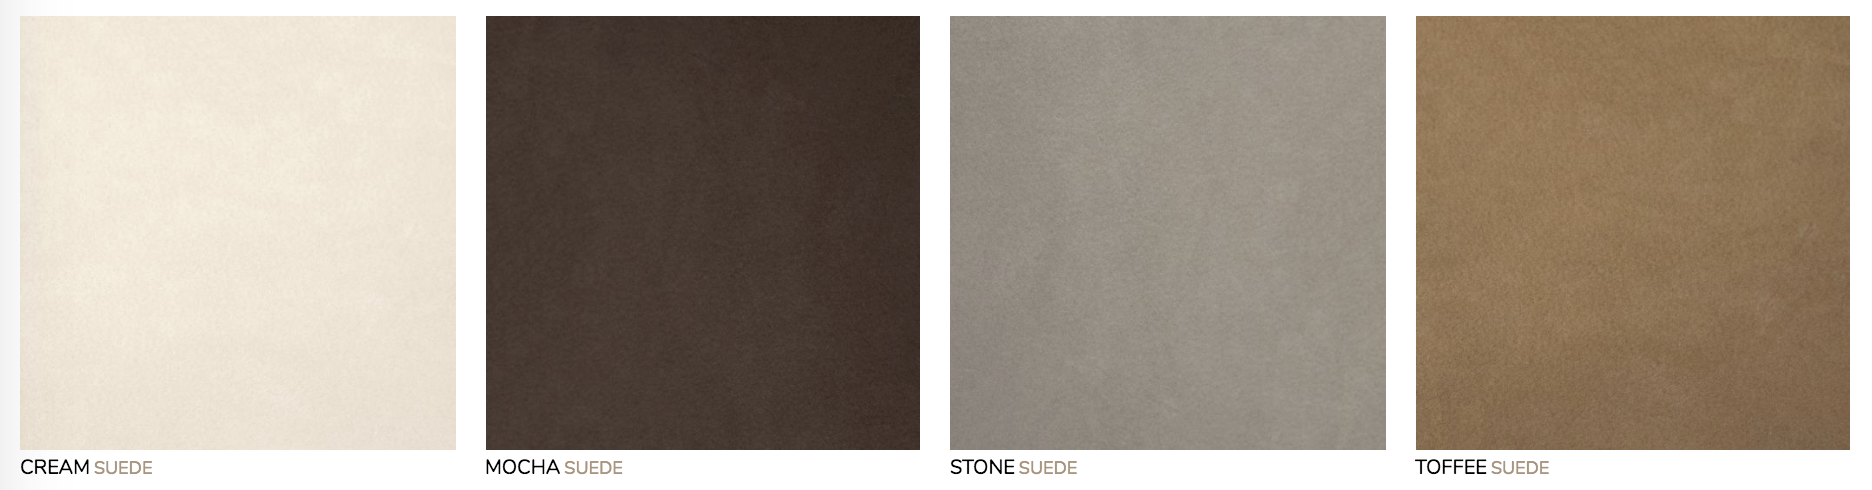 Suede Cover:  Smooth nubuck with a sleek surface, elegant look, silky touch. Note, suede may scuff more easily than Standard Leather.